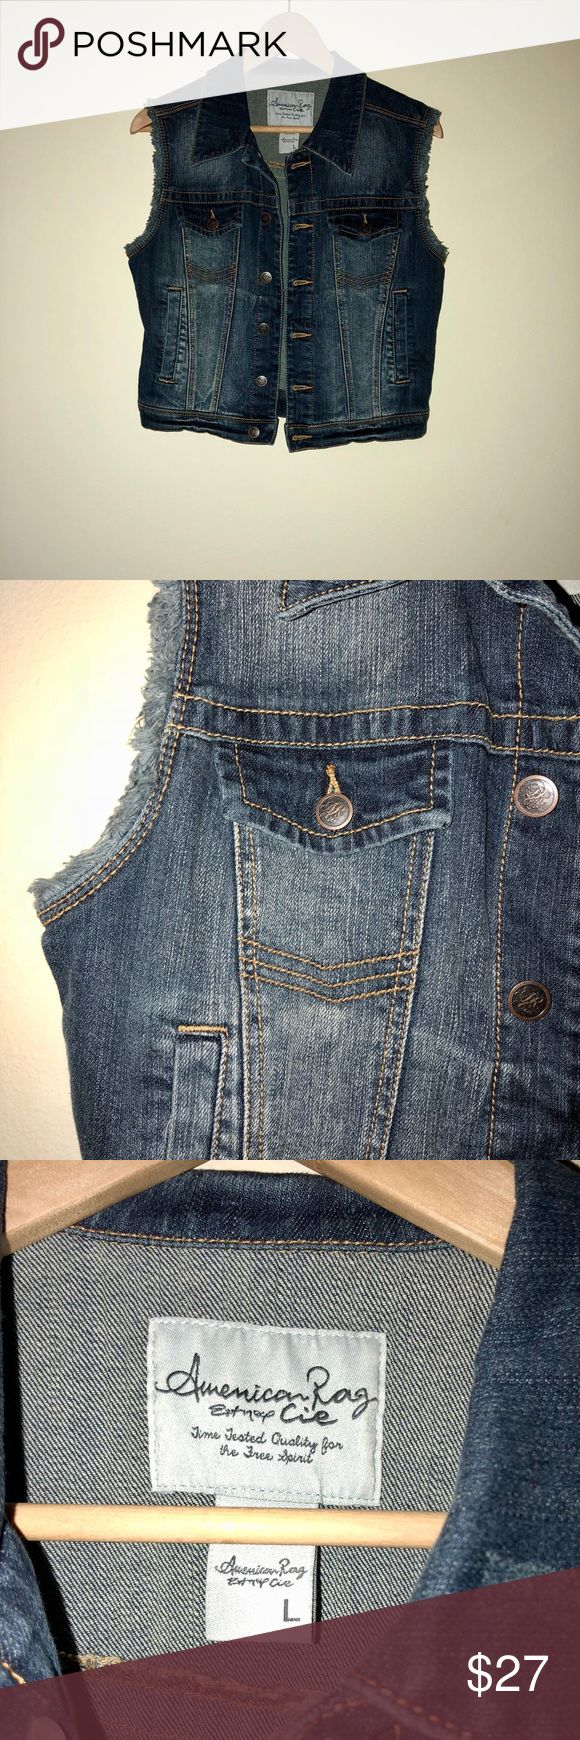 American Rag Jean Jacket Vest Jean jacket vest by American Rag. Never worn! This piece is super versatile. Wear it in every season! Pair with a sundress and sandals in the heat or a sweater dress in the cold! American Rag Jackets & Coats Vests